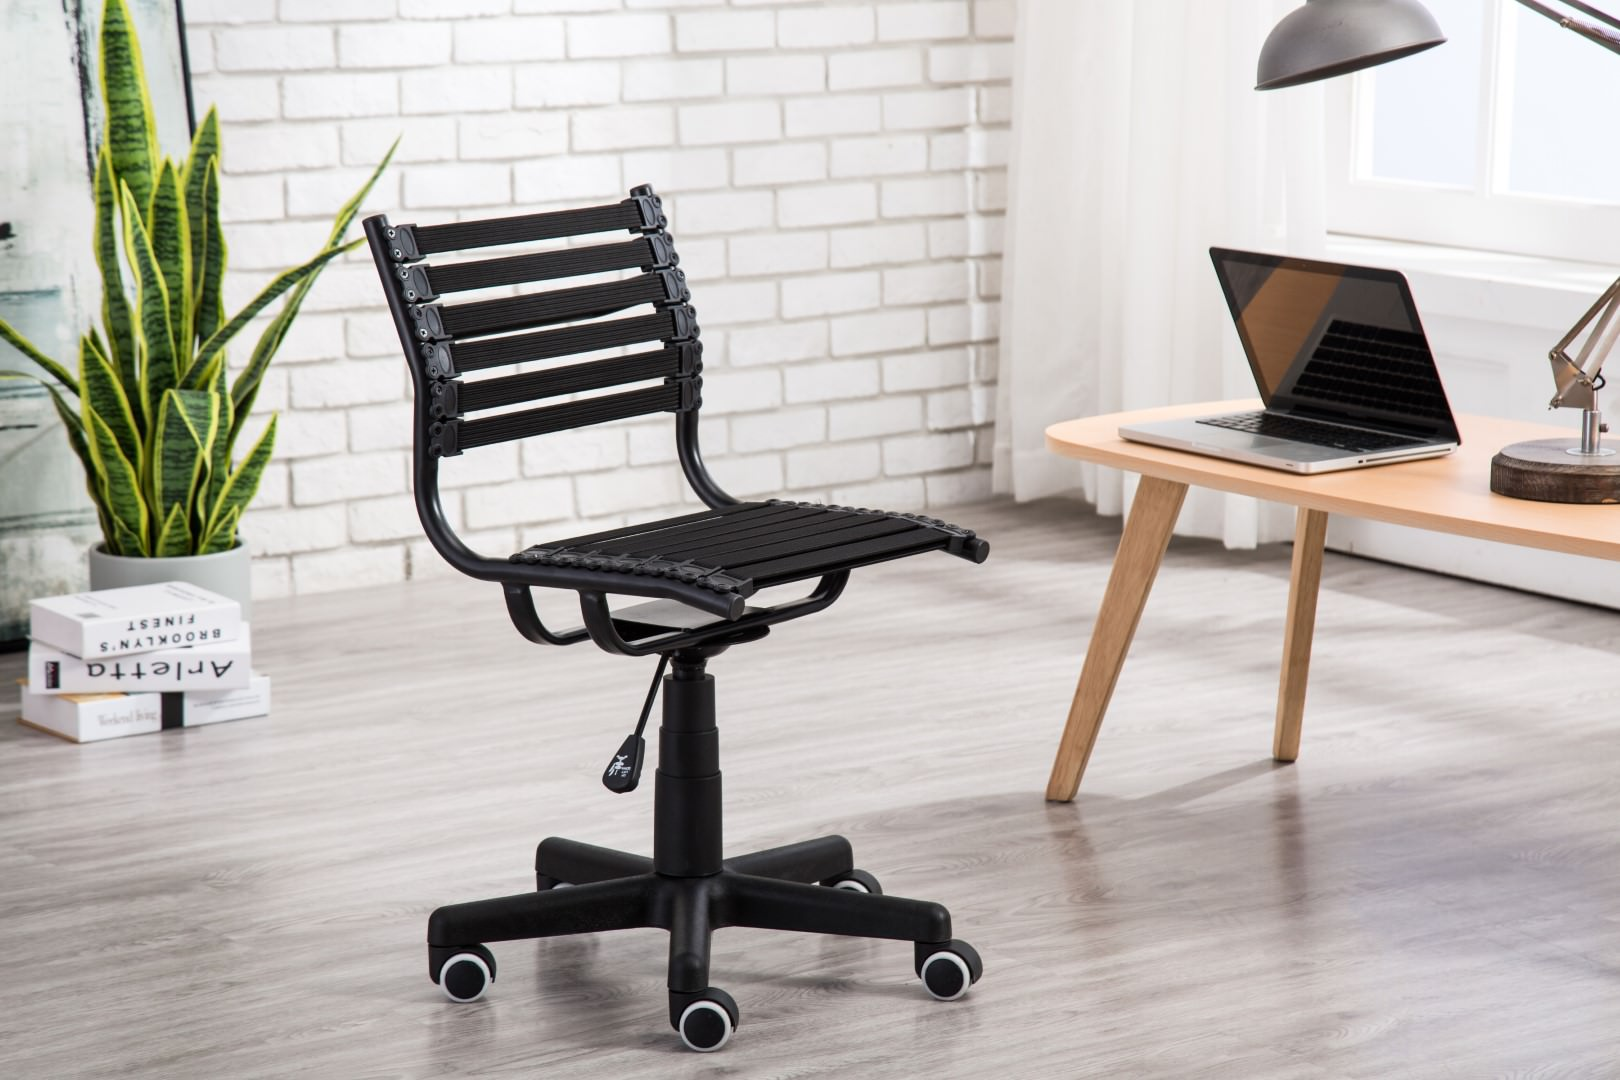 comfortable home office chair outdoor swing singapore porthos breathable latest unique design with premium quality comfort 360 degree swivel height adjustable upholstered deluxe modern